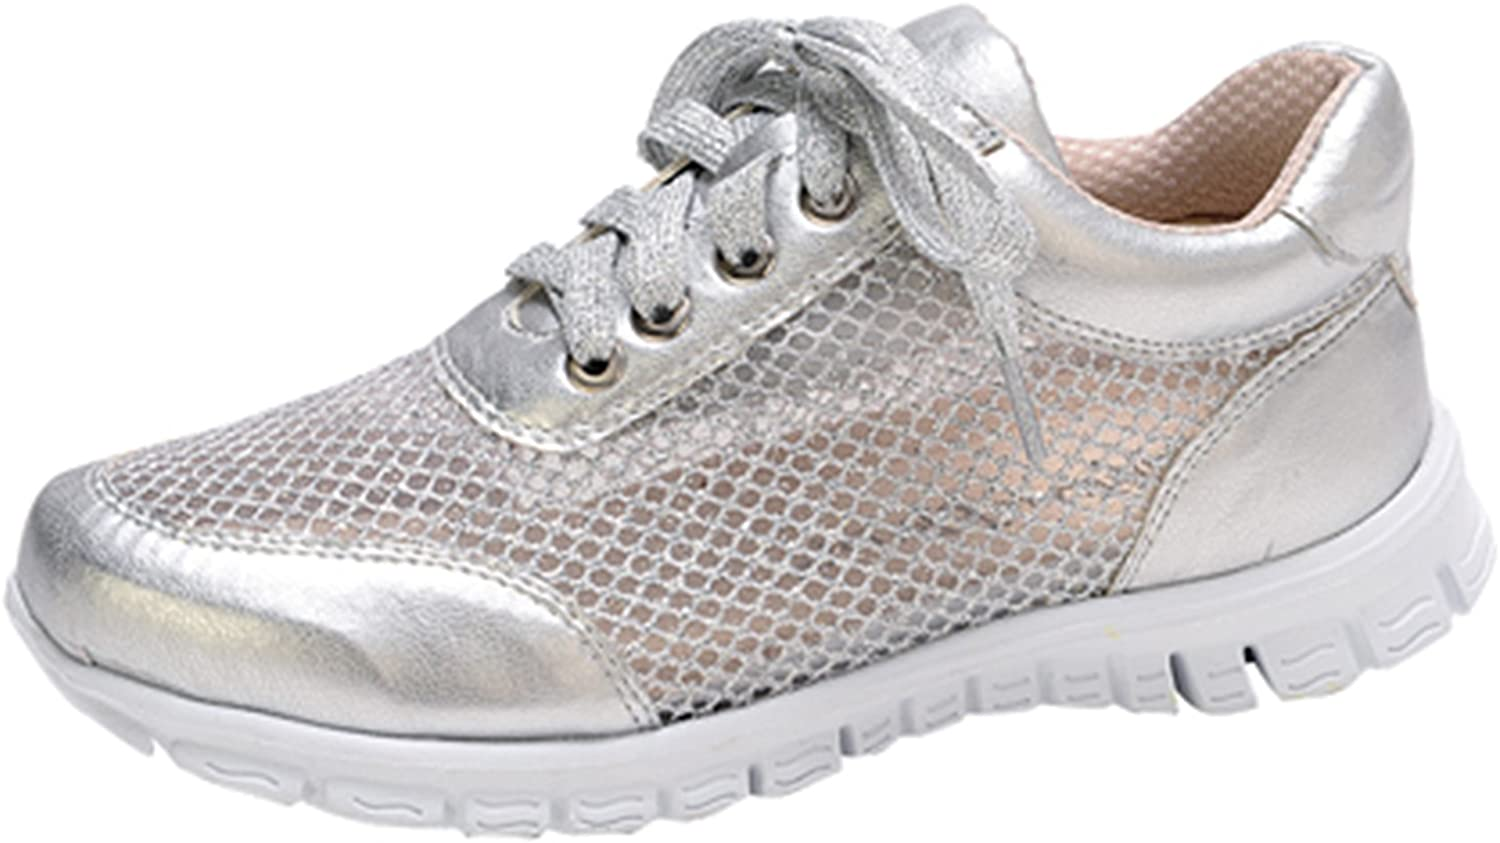 Nature Breeze Women's Mesh Up Lightweight Fashion Comfortable Almond Toe Sneaker